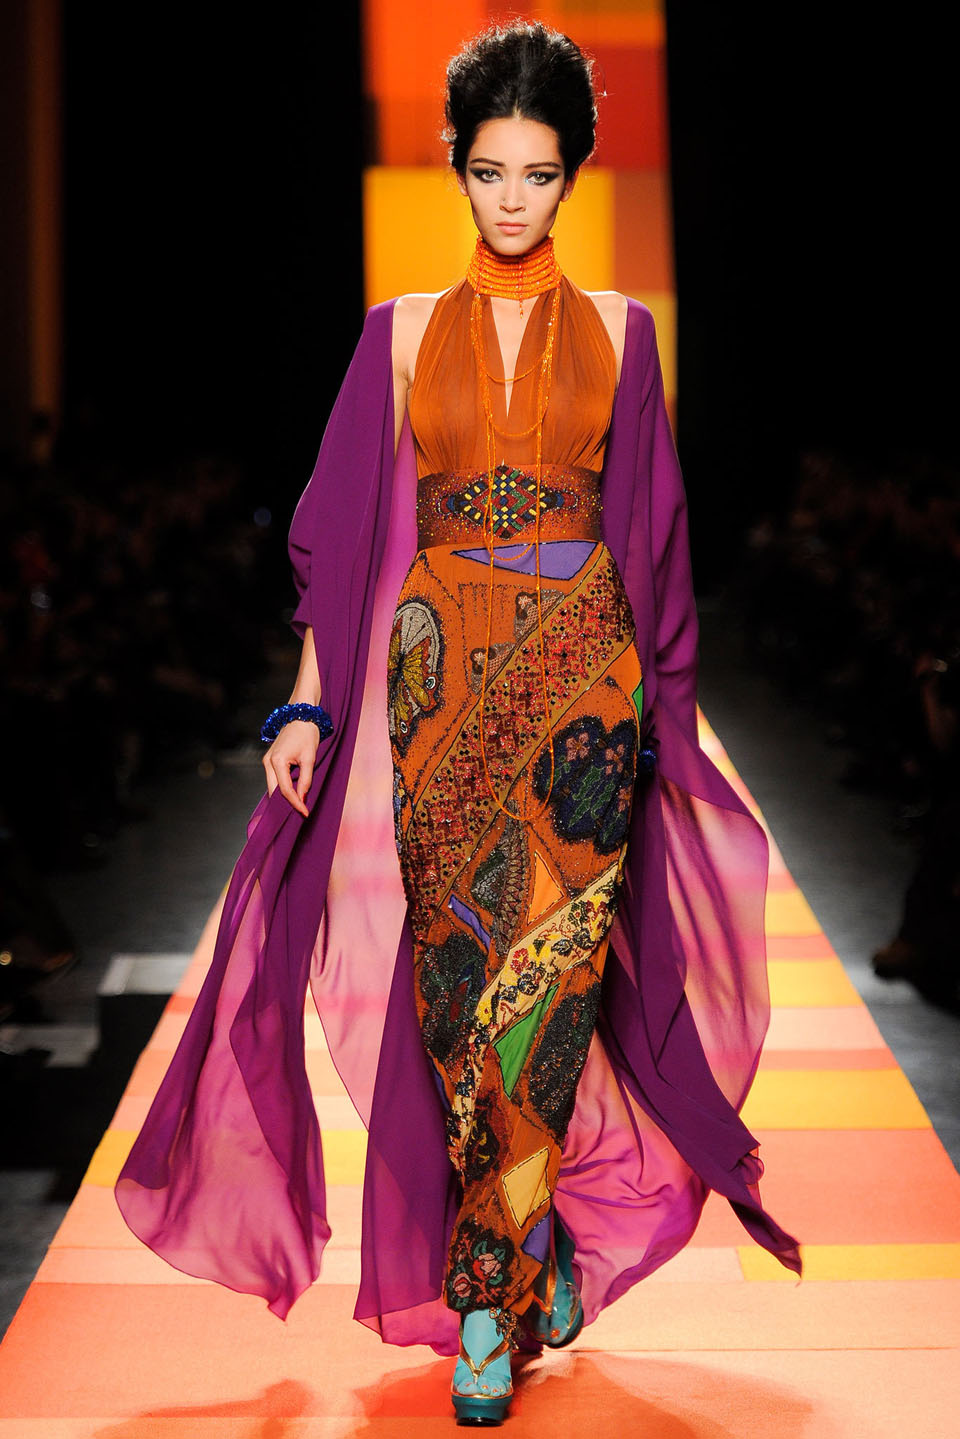 Jean Paul Gaultier Spring - Summer 2013, Haute Couture collection.14